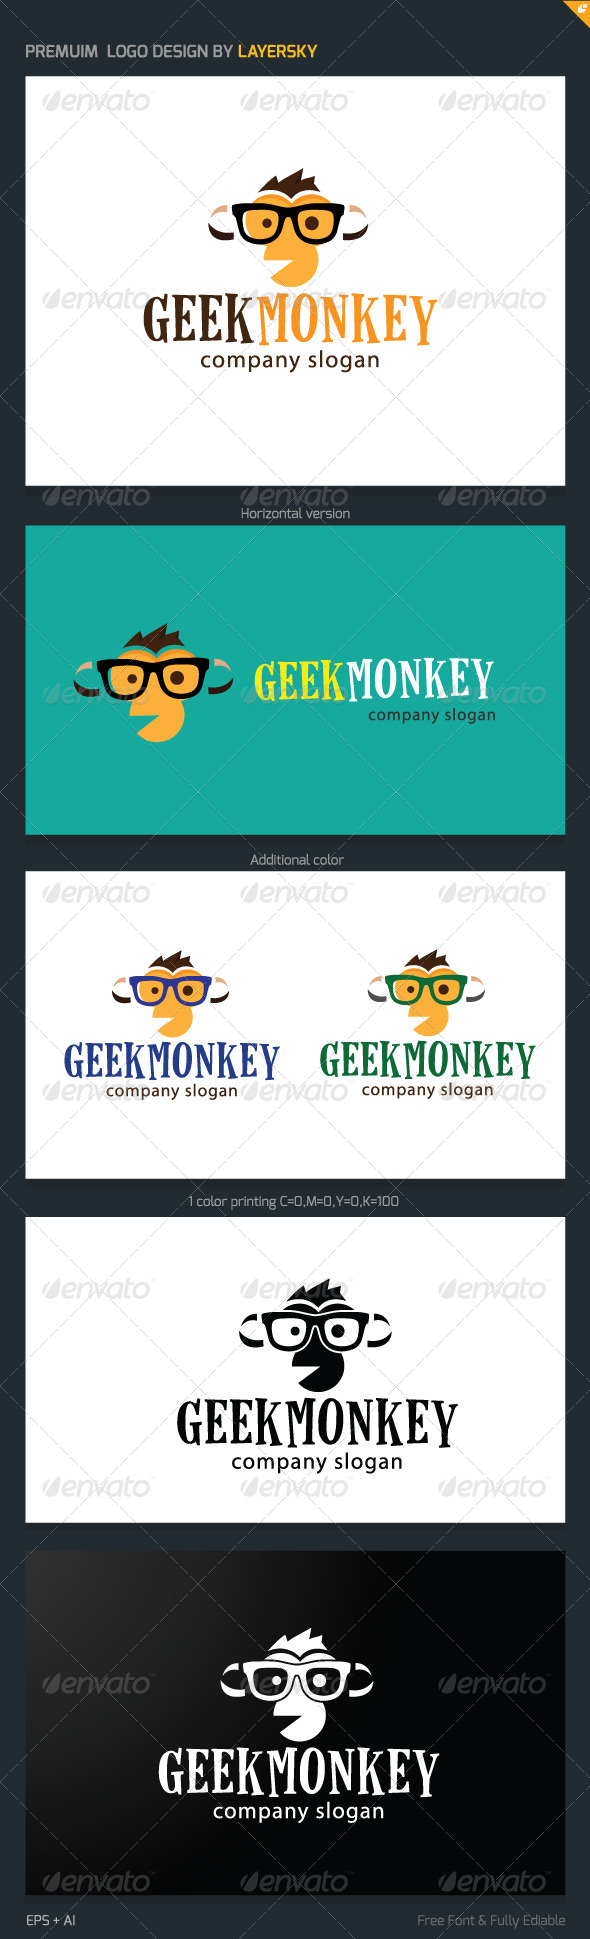 GraphicRiver Geek Monkey 8029444